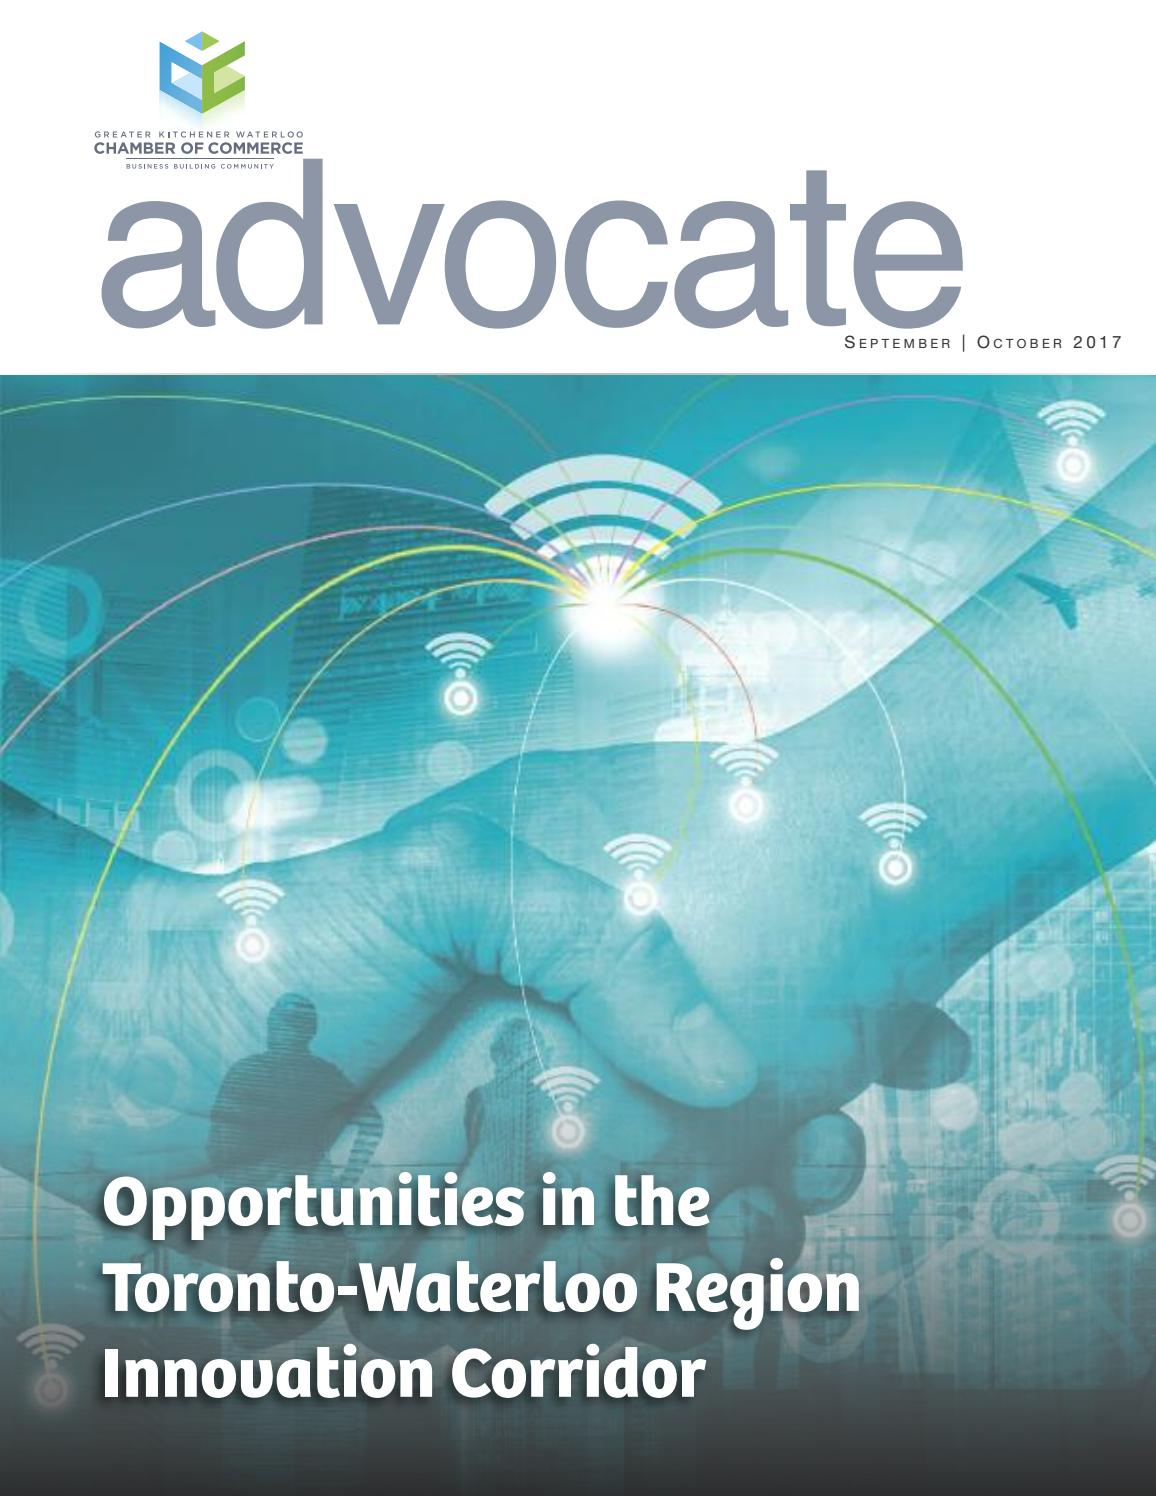 September/October 2017 Advocate Web by Natalie Hemmerich - issuu